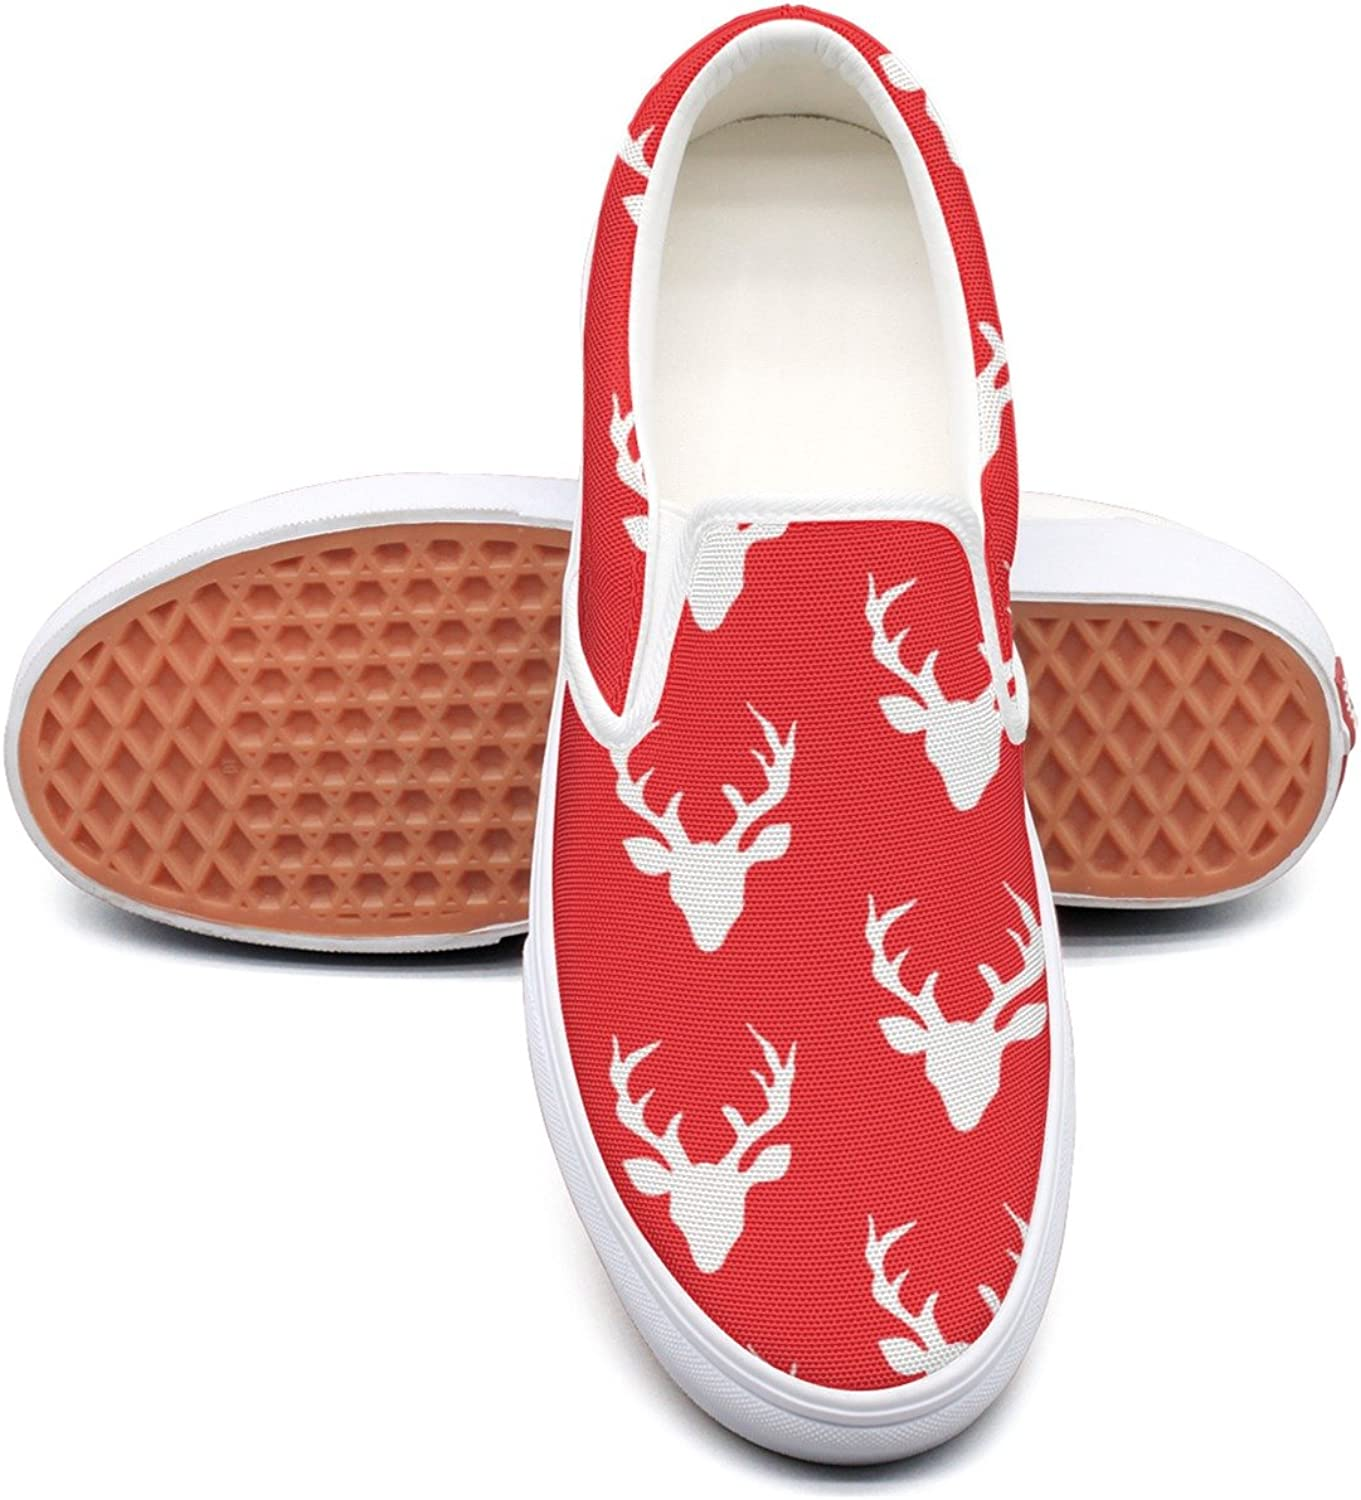 Red Christmas Deer Moose Womens Navy Canvas Sneakers Low Top Fashion Sneakers For Women's